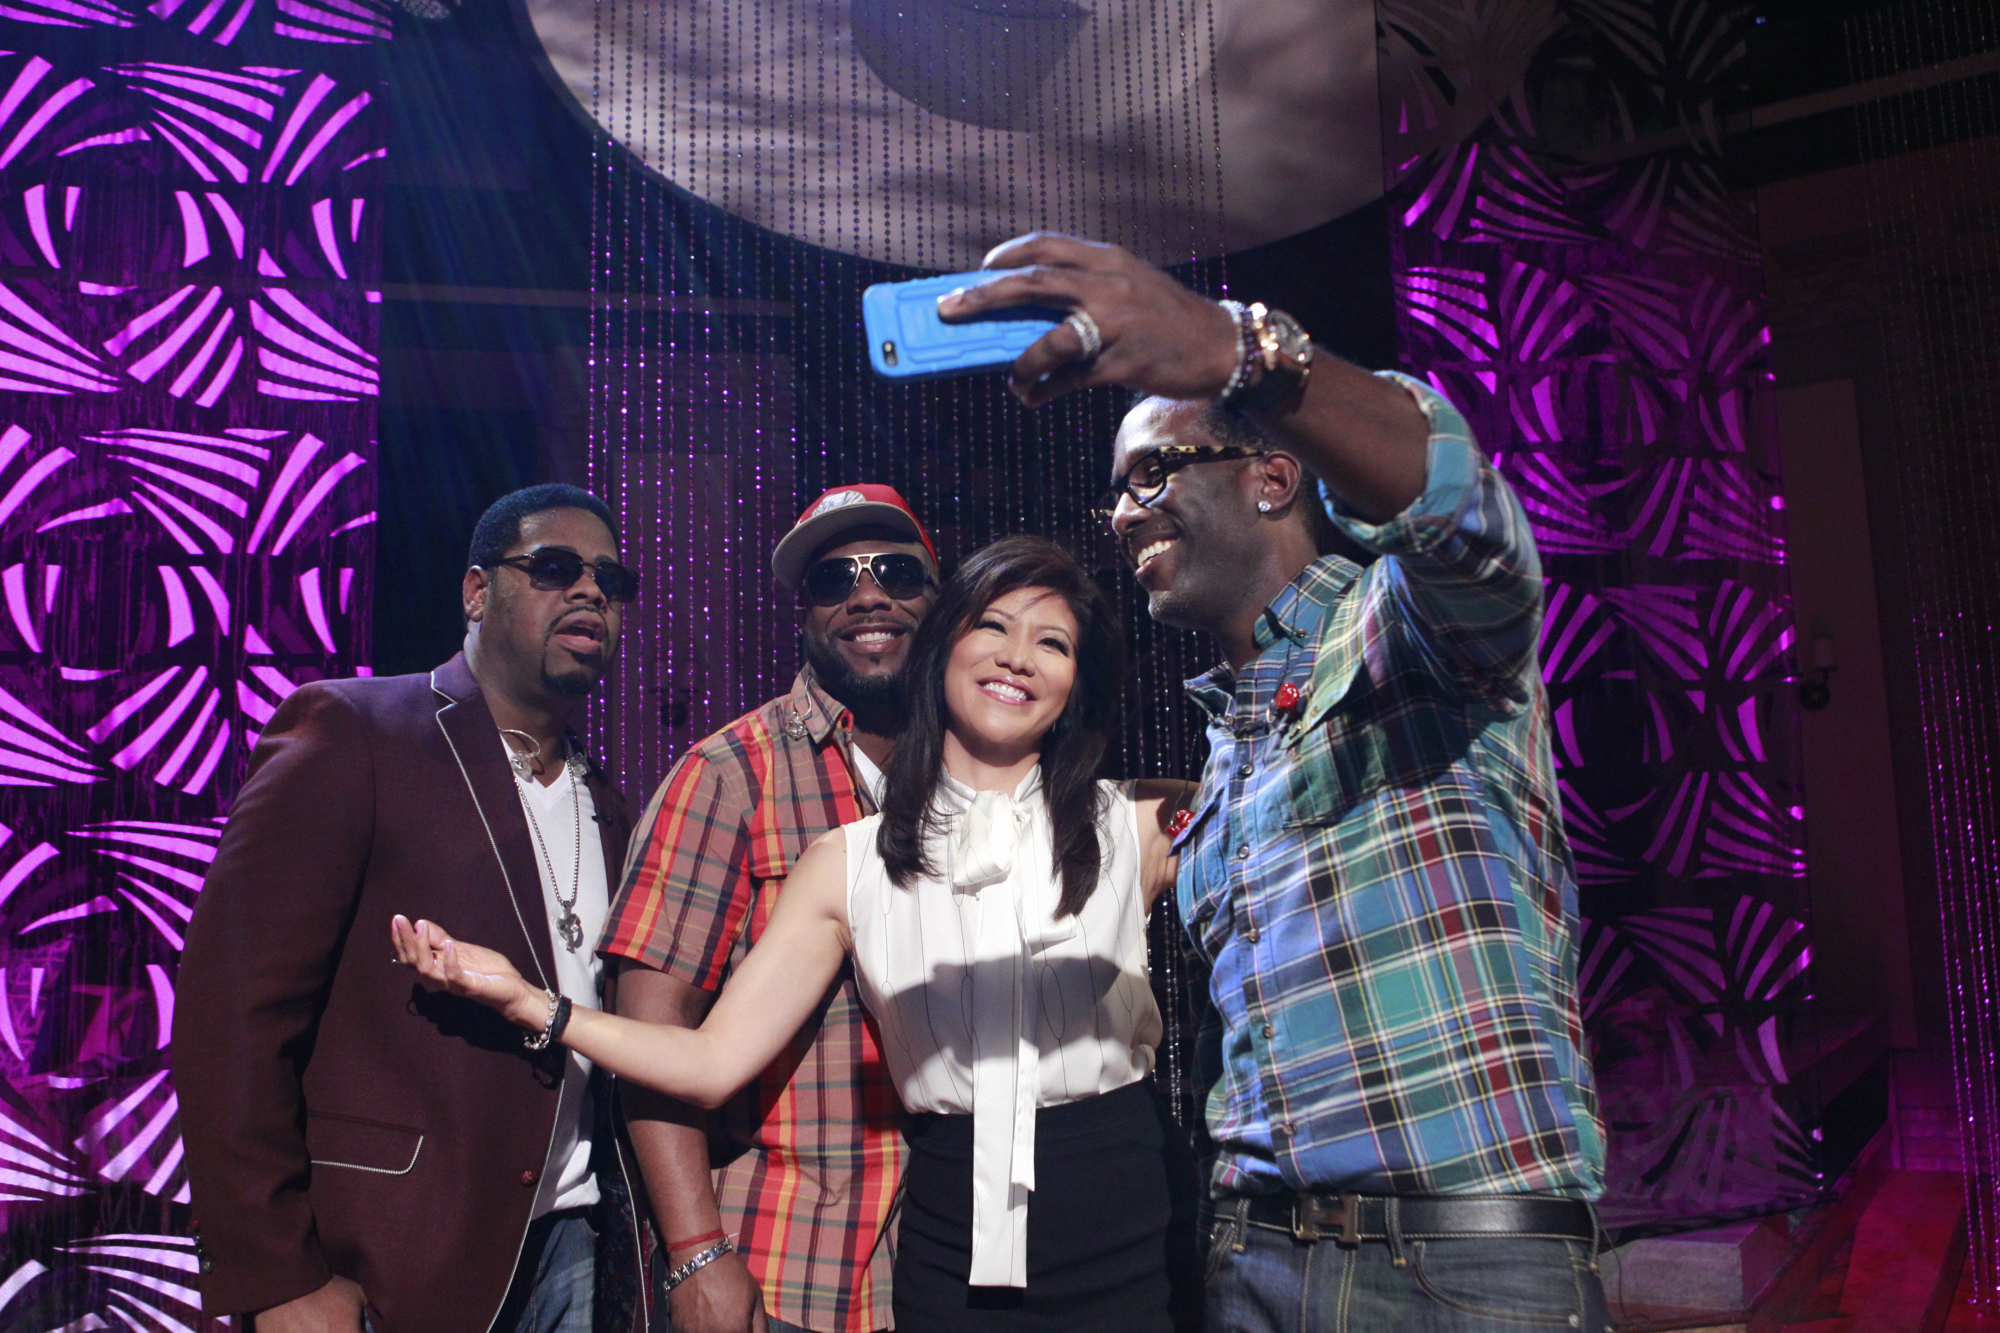 Julie With Boyz II Men.